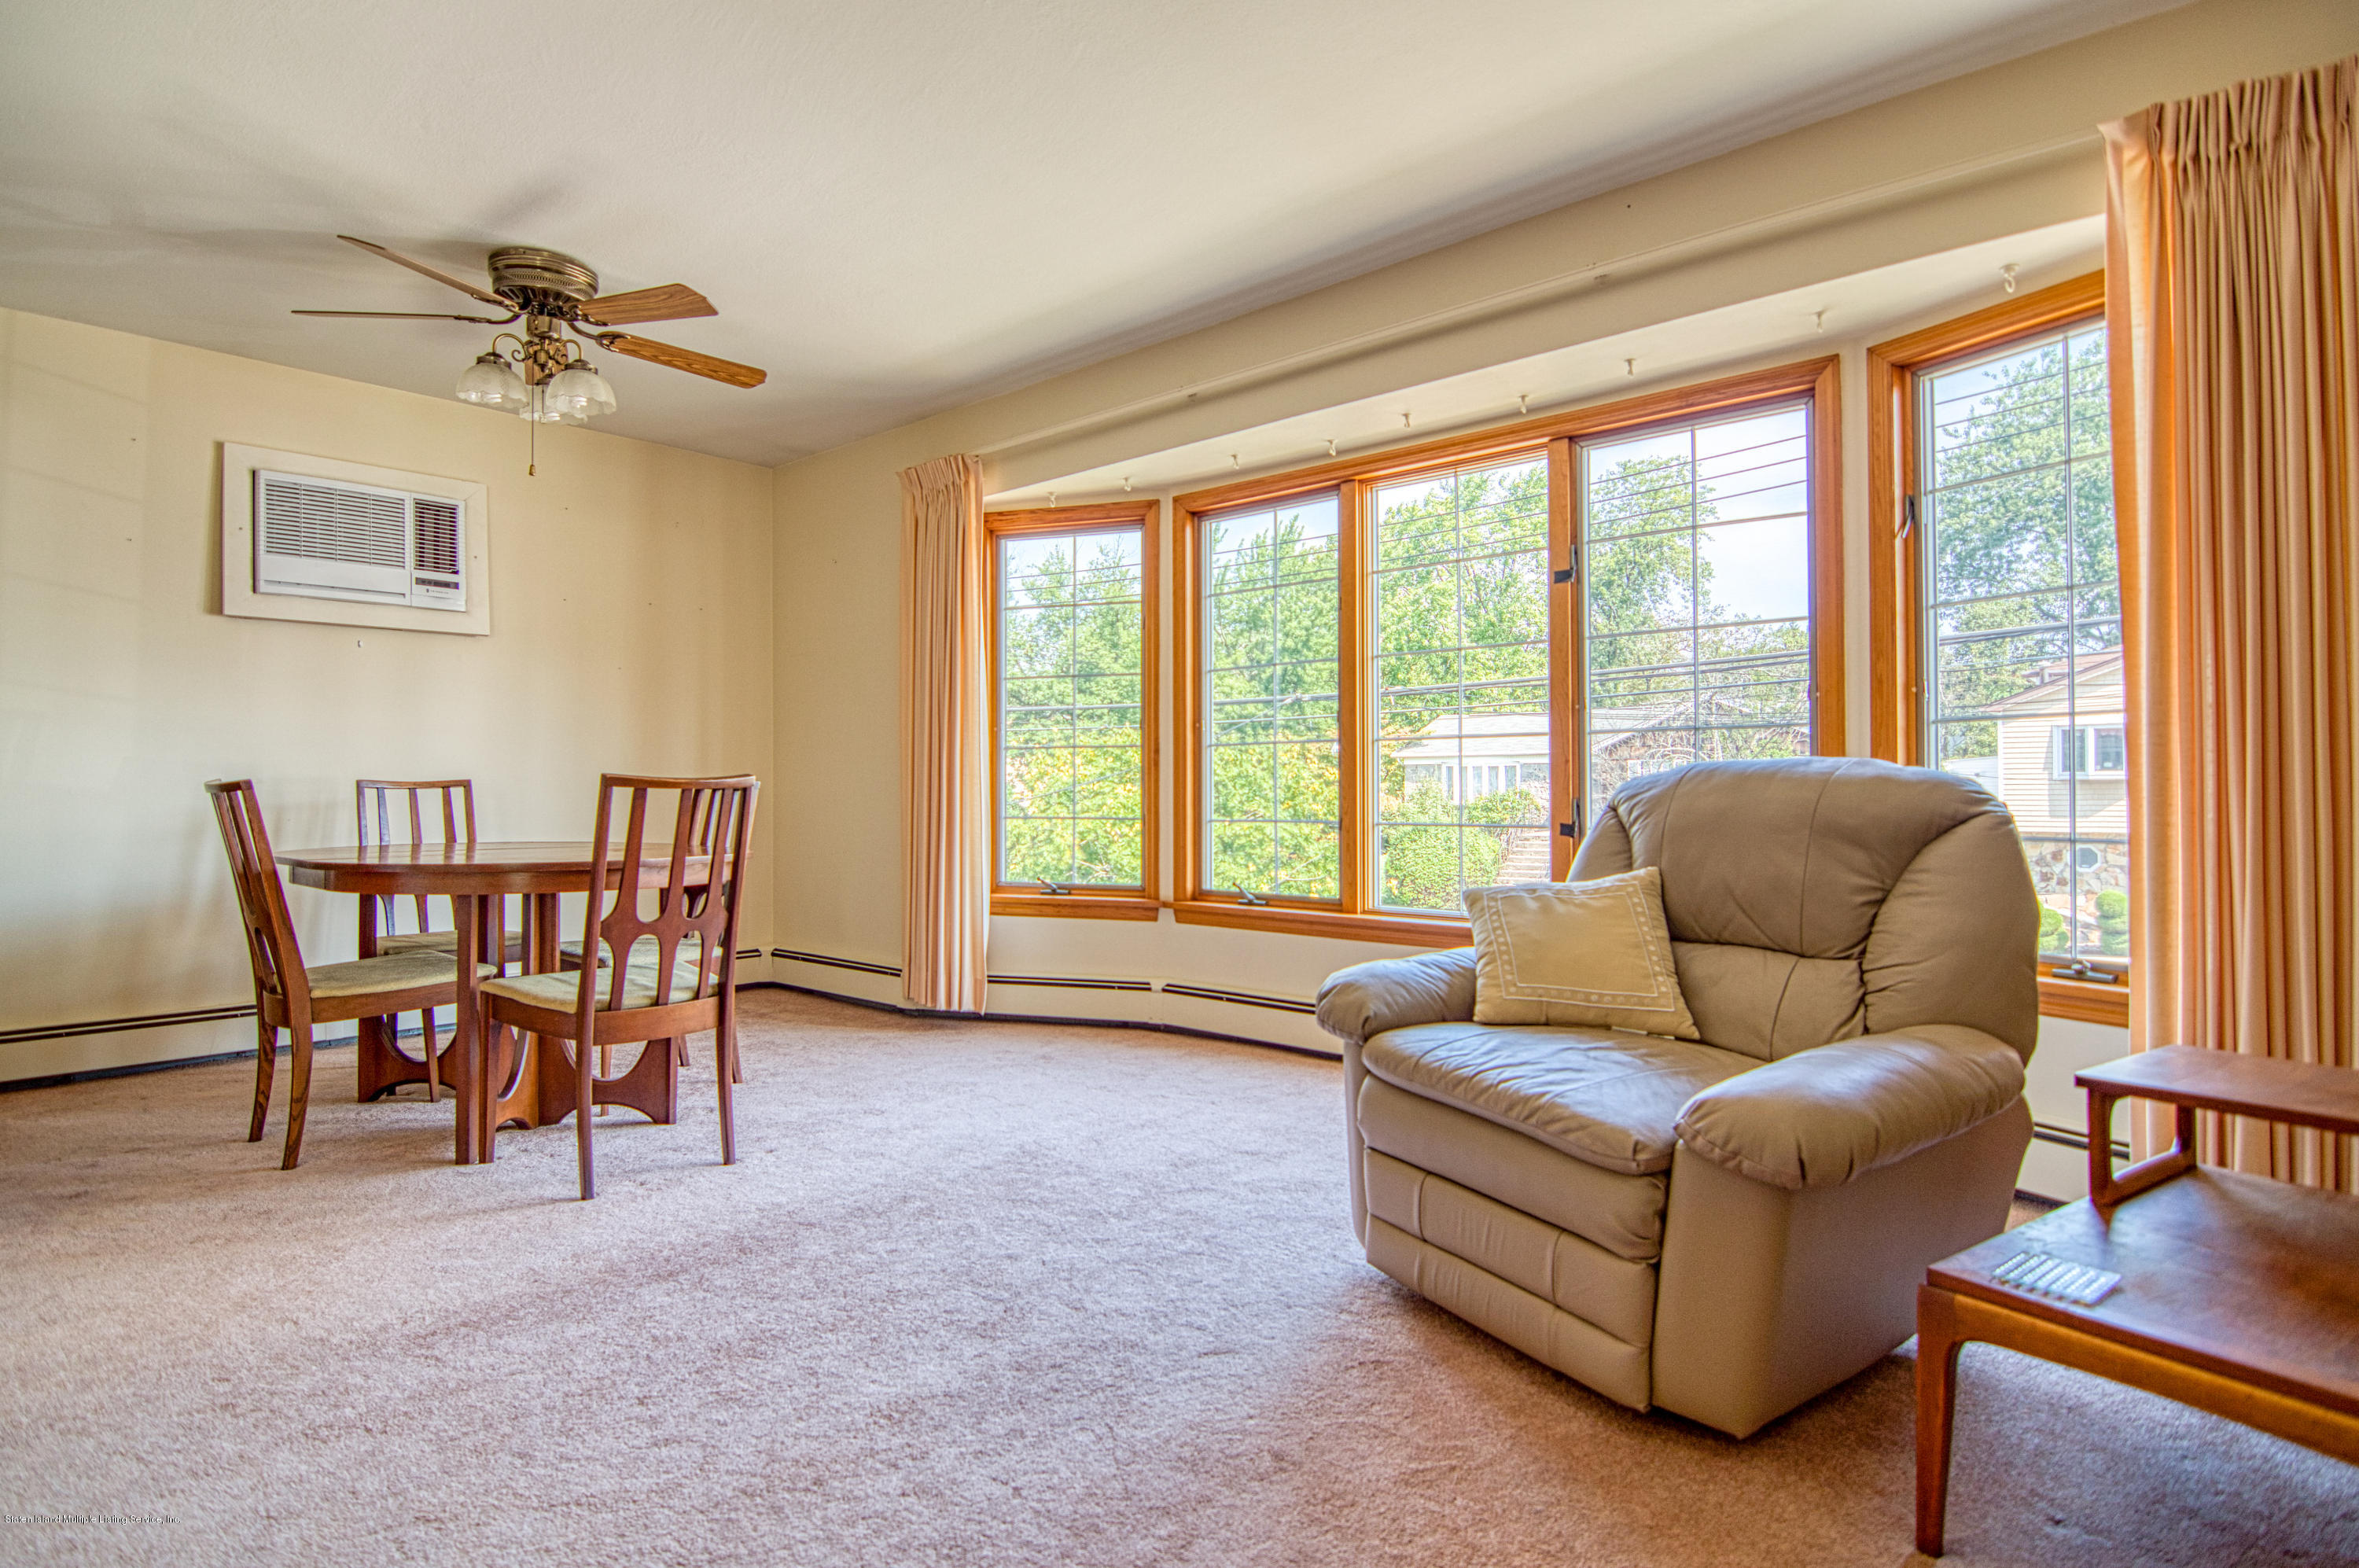 Single Family - Detached 124 Queen Street  Staten Island, NY 10314, MLS-1131413-5